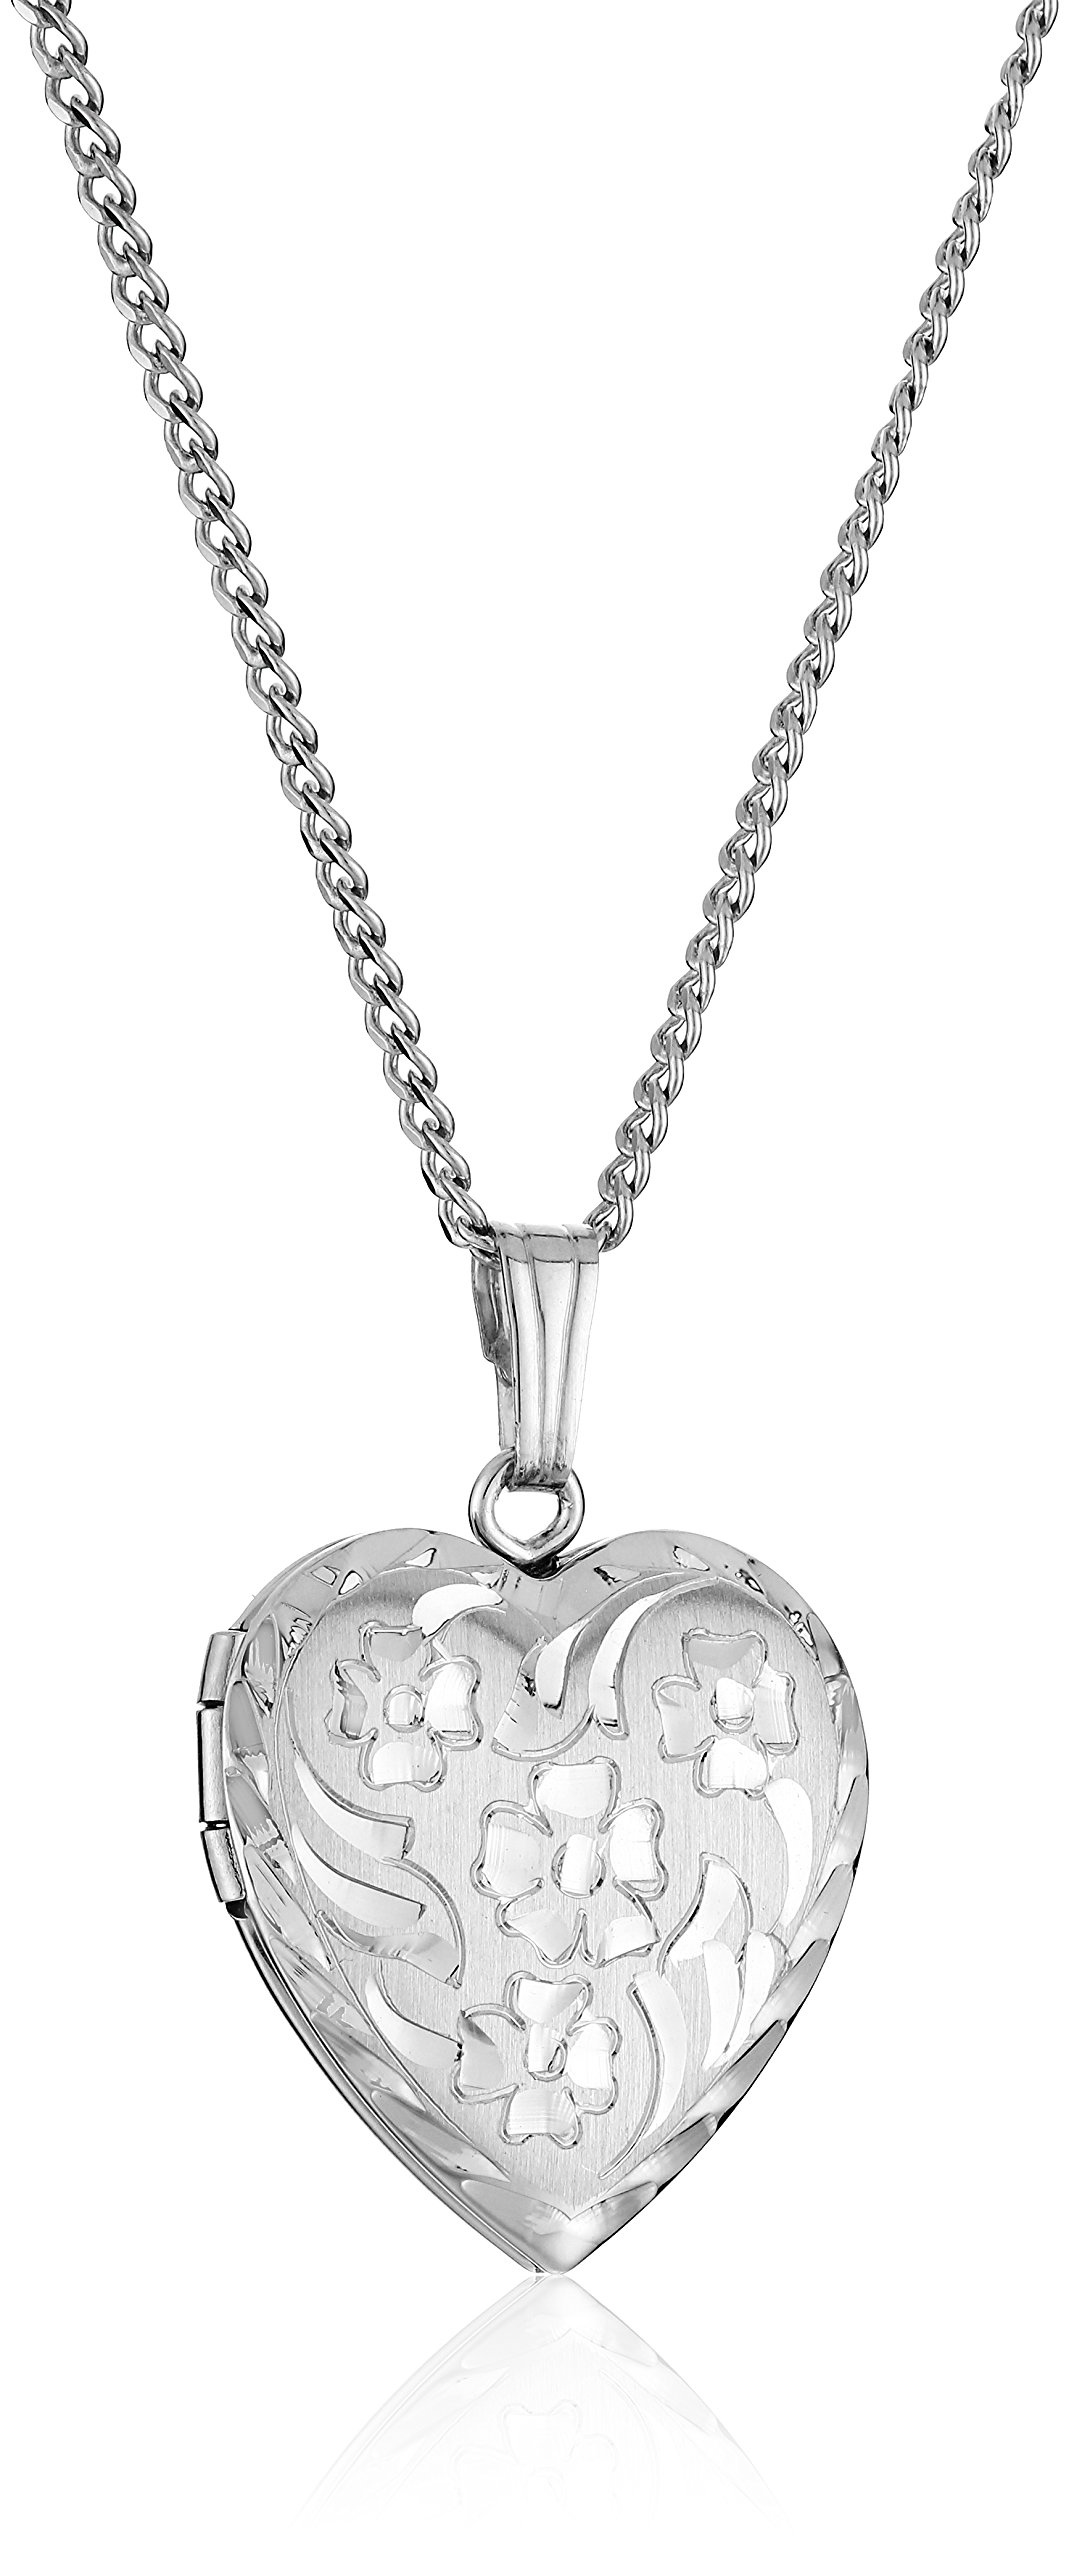 Sterling Silver Engraved Flowers Heart Locket Necklace, 18''